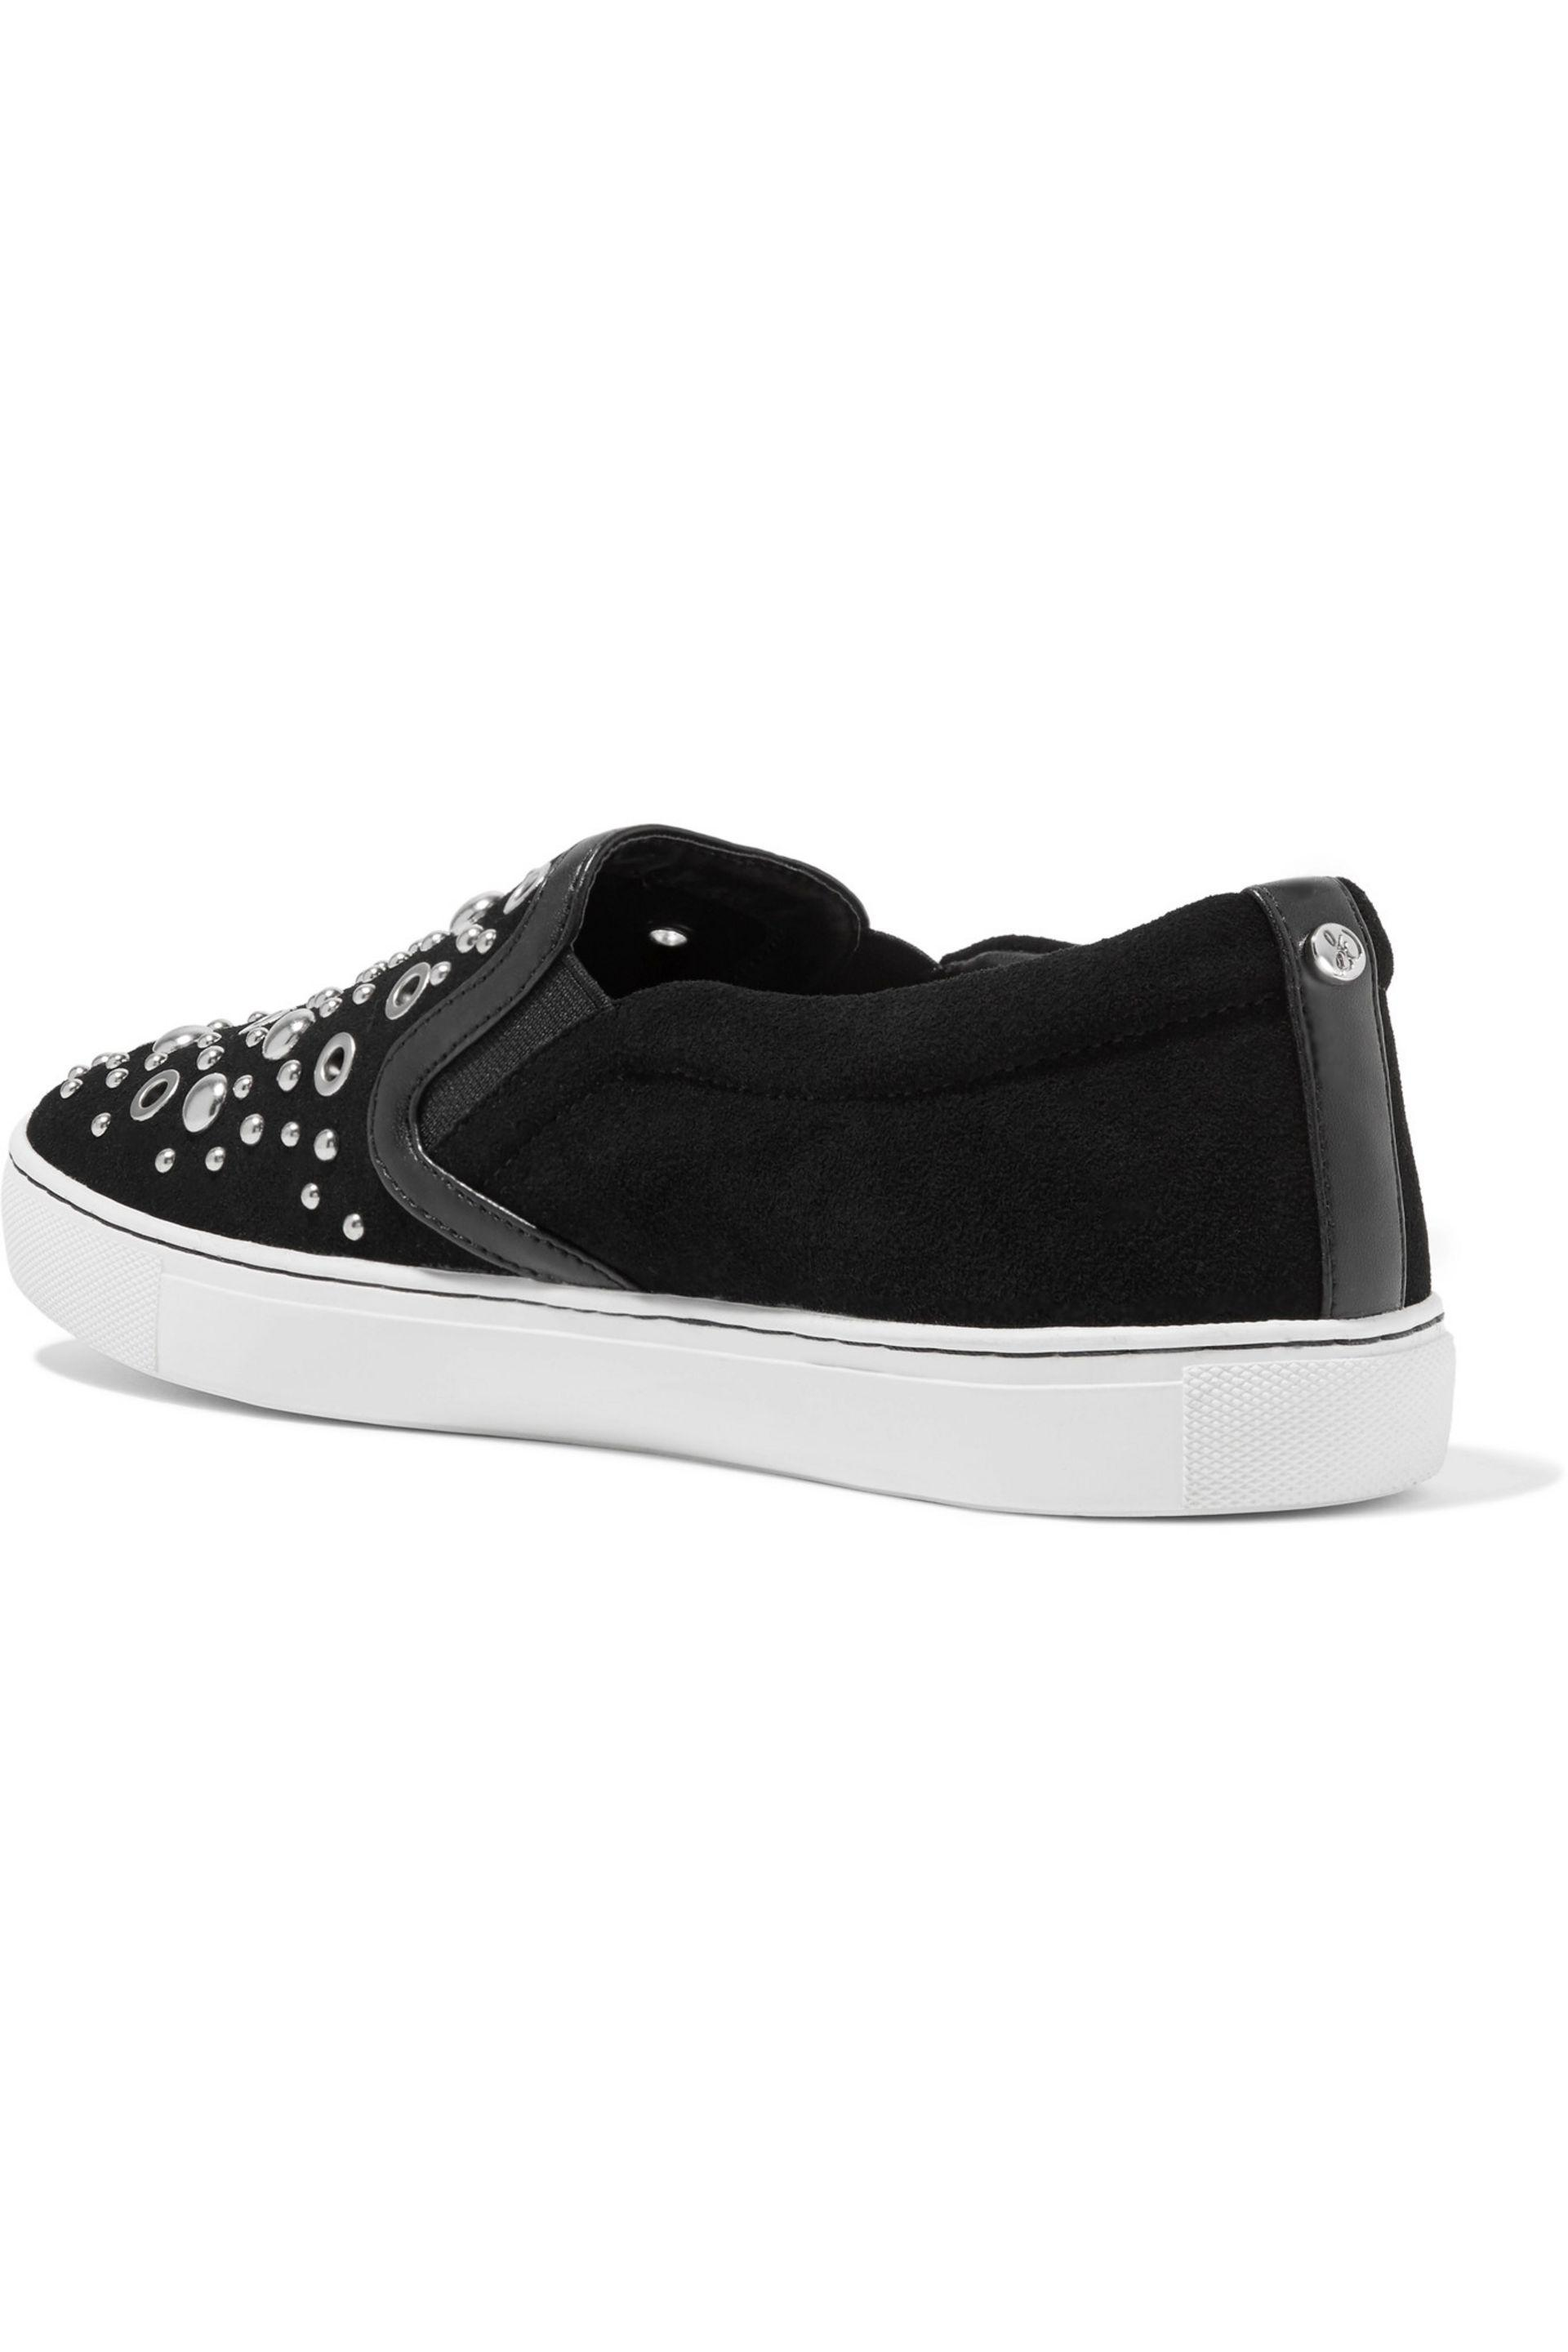 Sam Edelman Paven Embellished Leather And Suede Slip-on Sneakers in Black